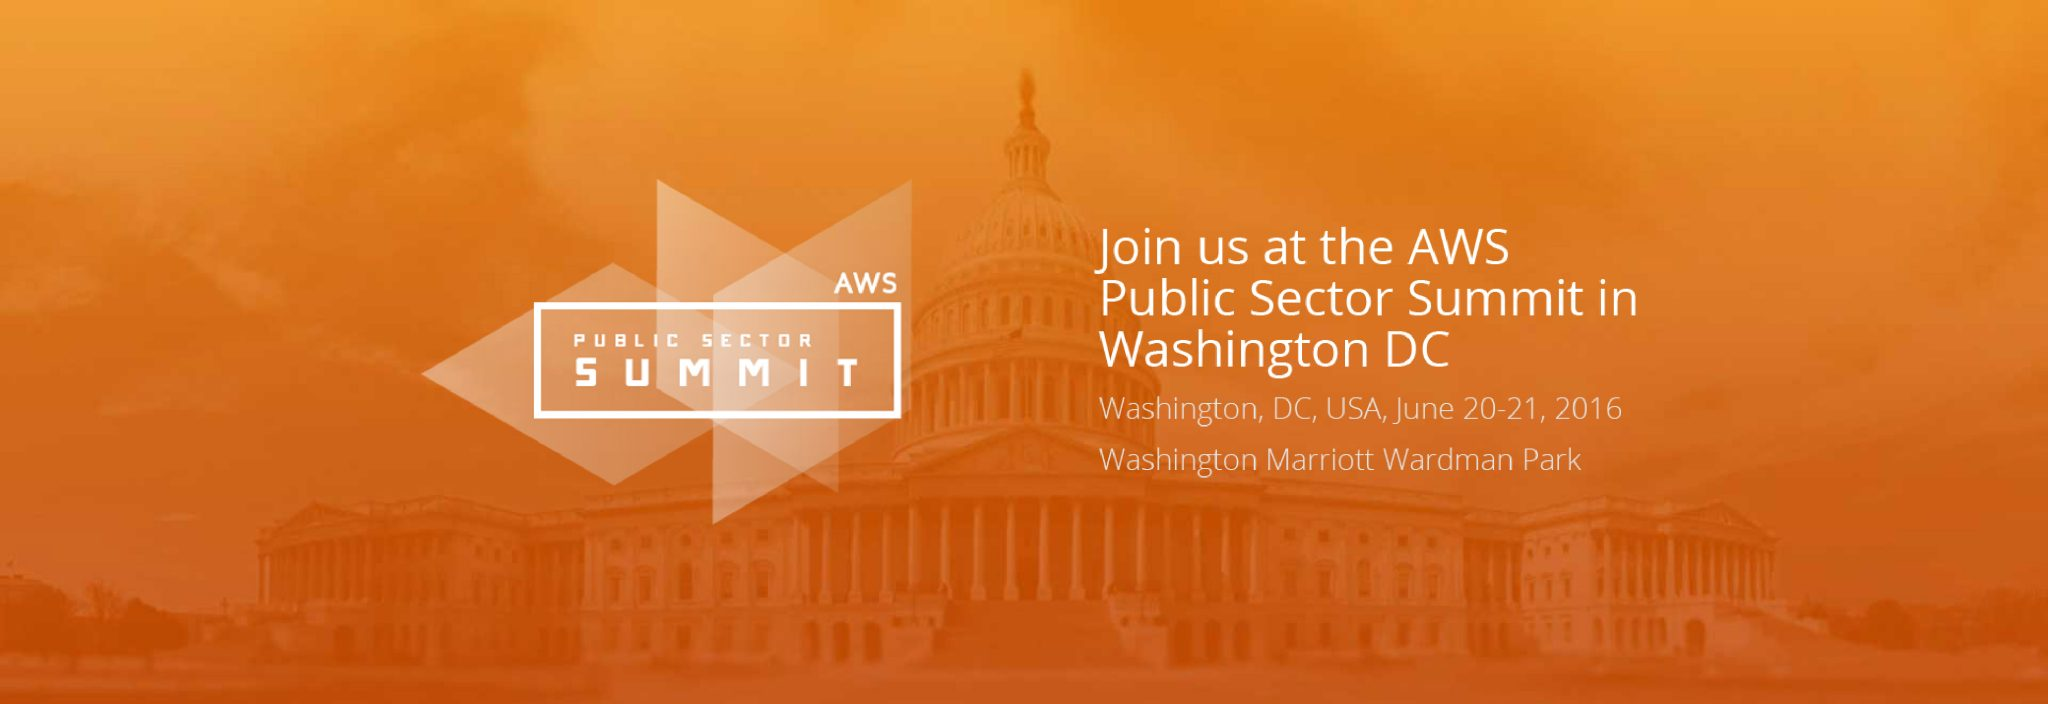 aws-summit-washington-dc-01